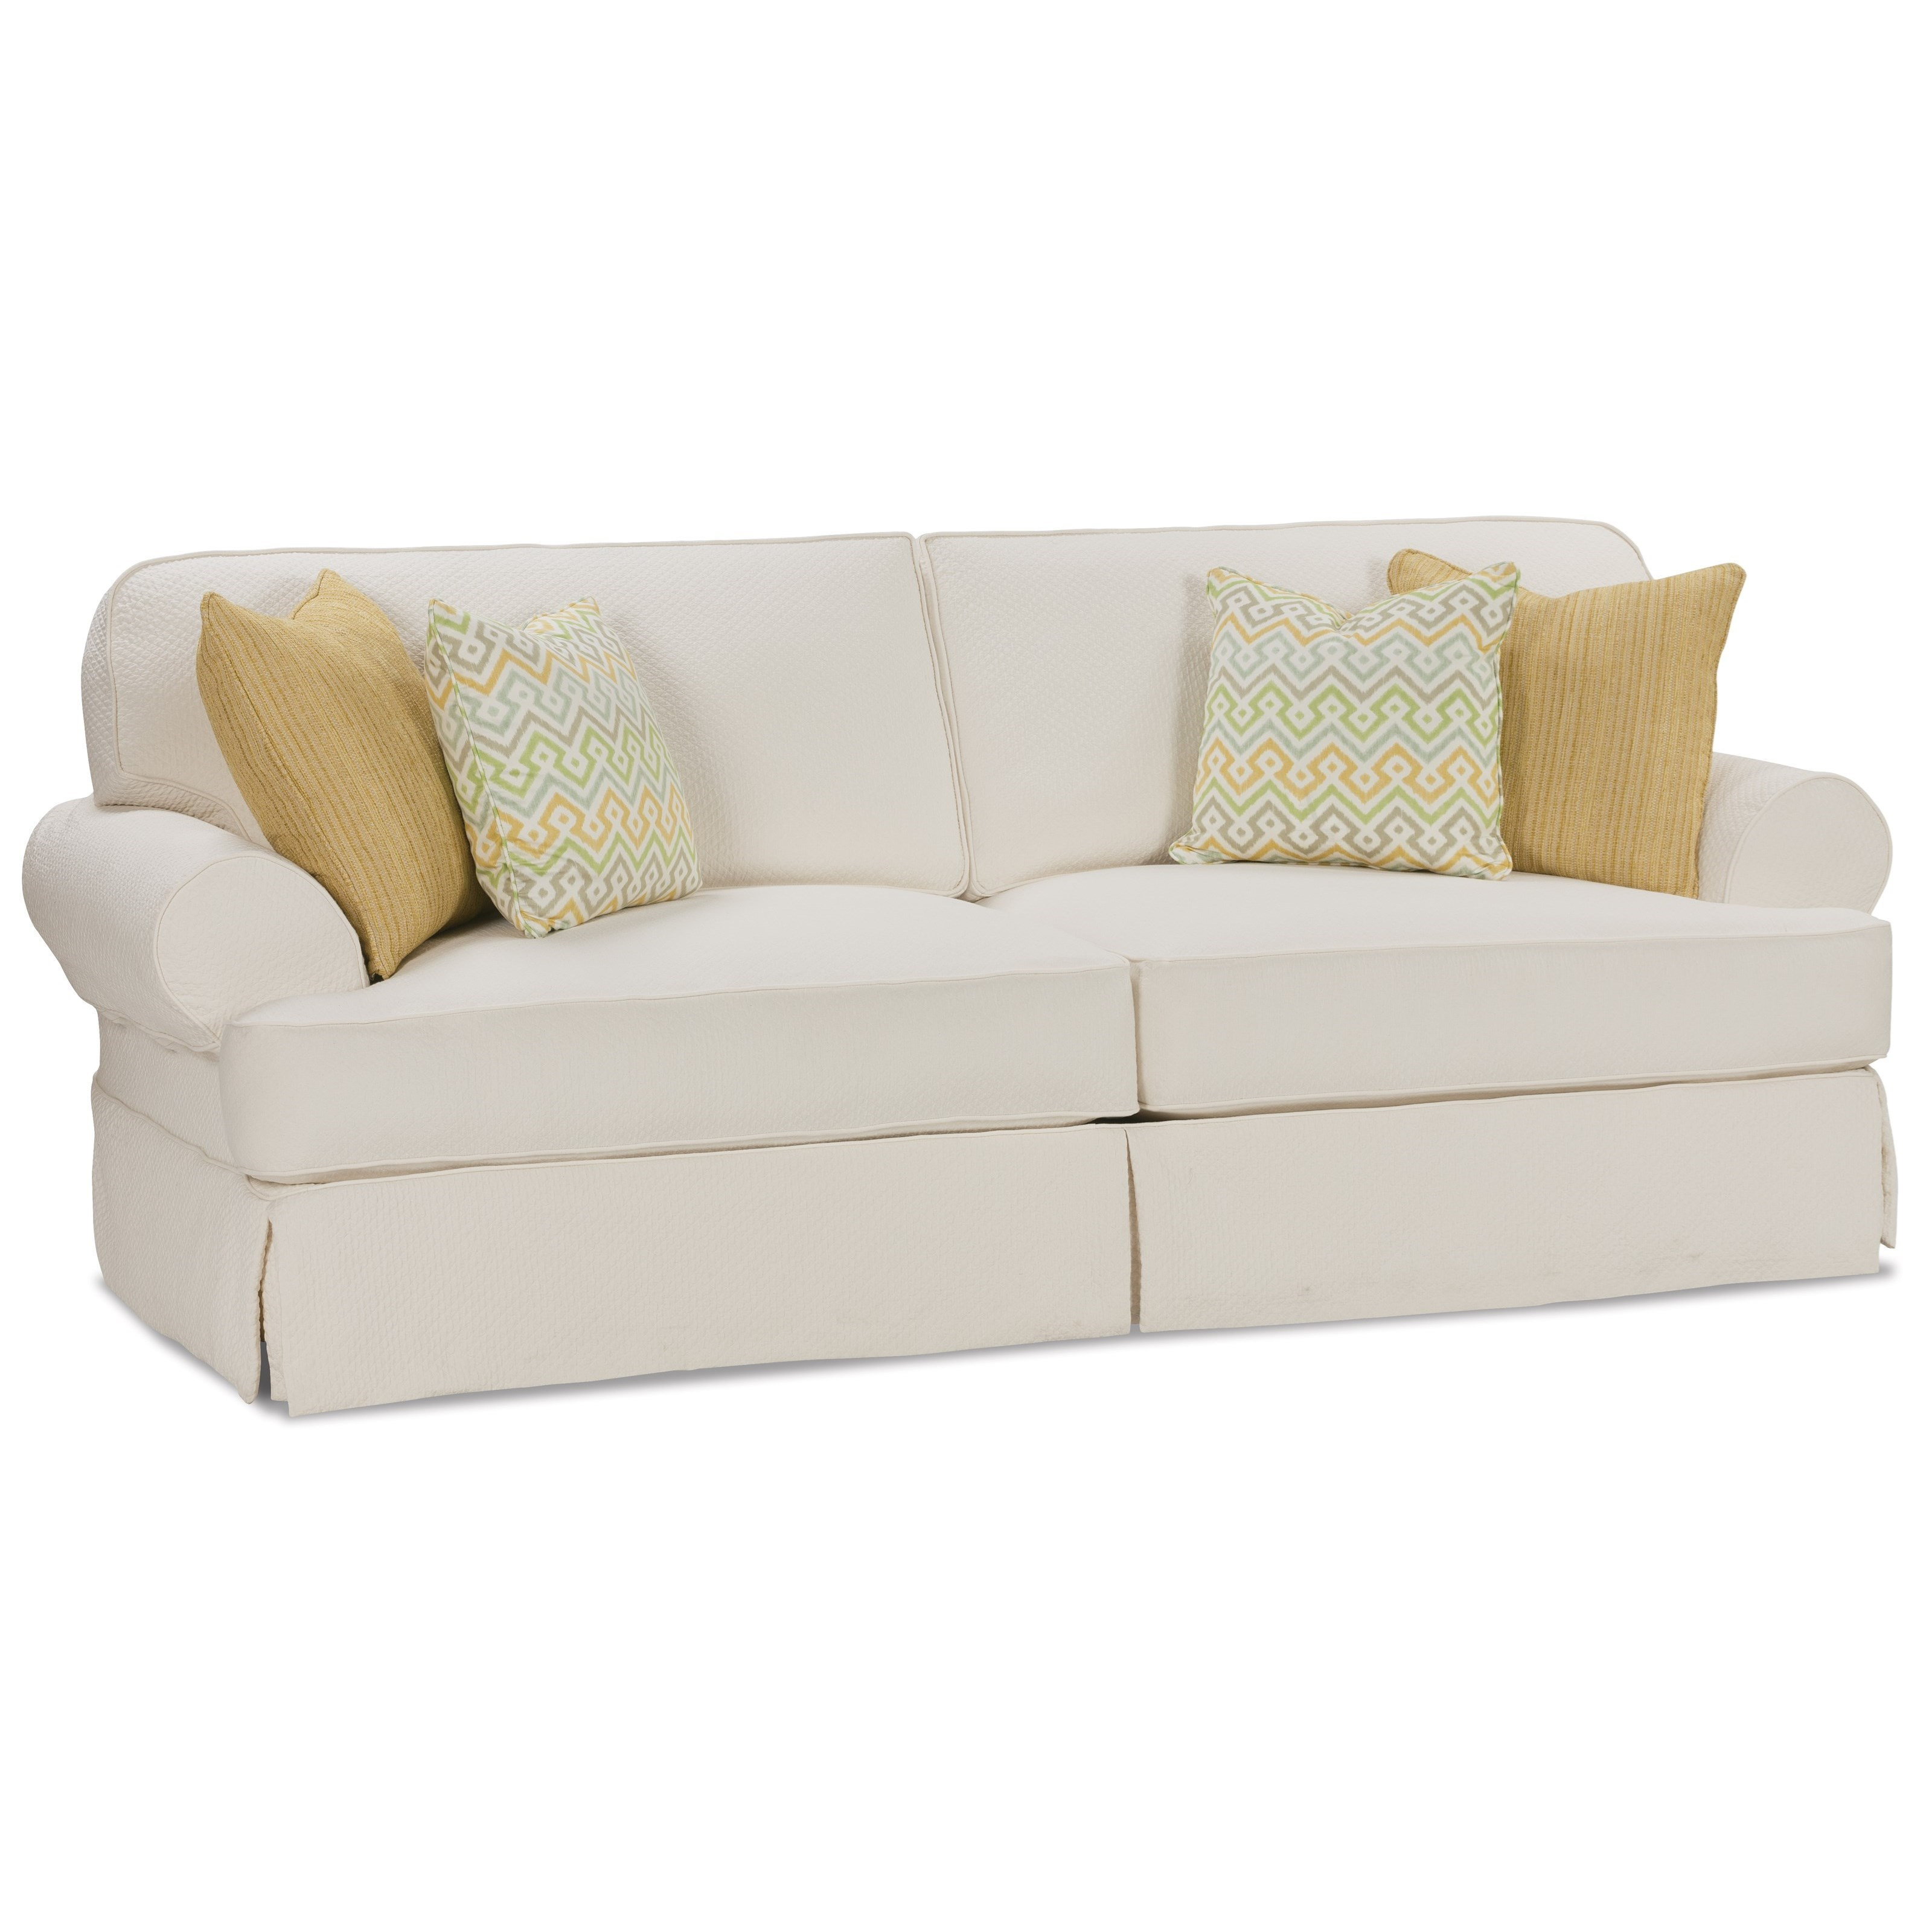 Traditional 2 Seat Sofa With Slipcover